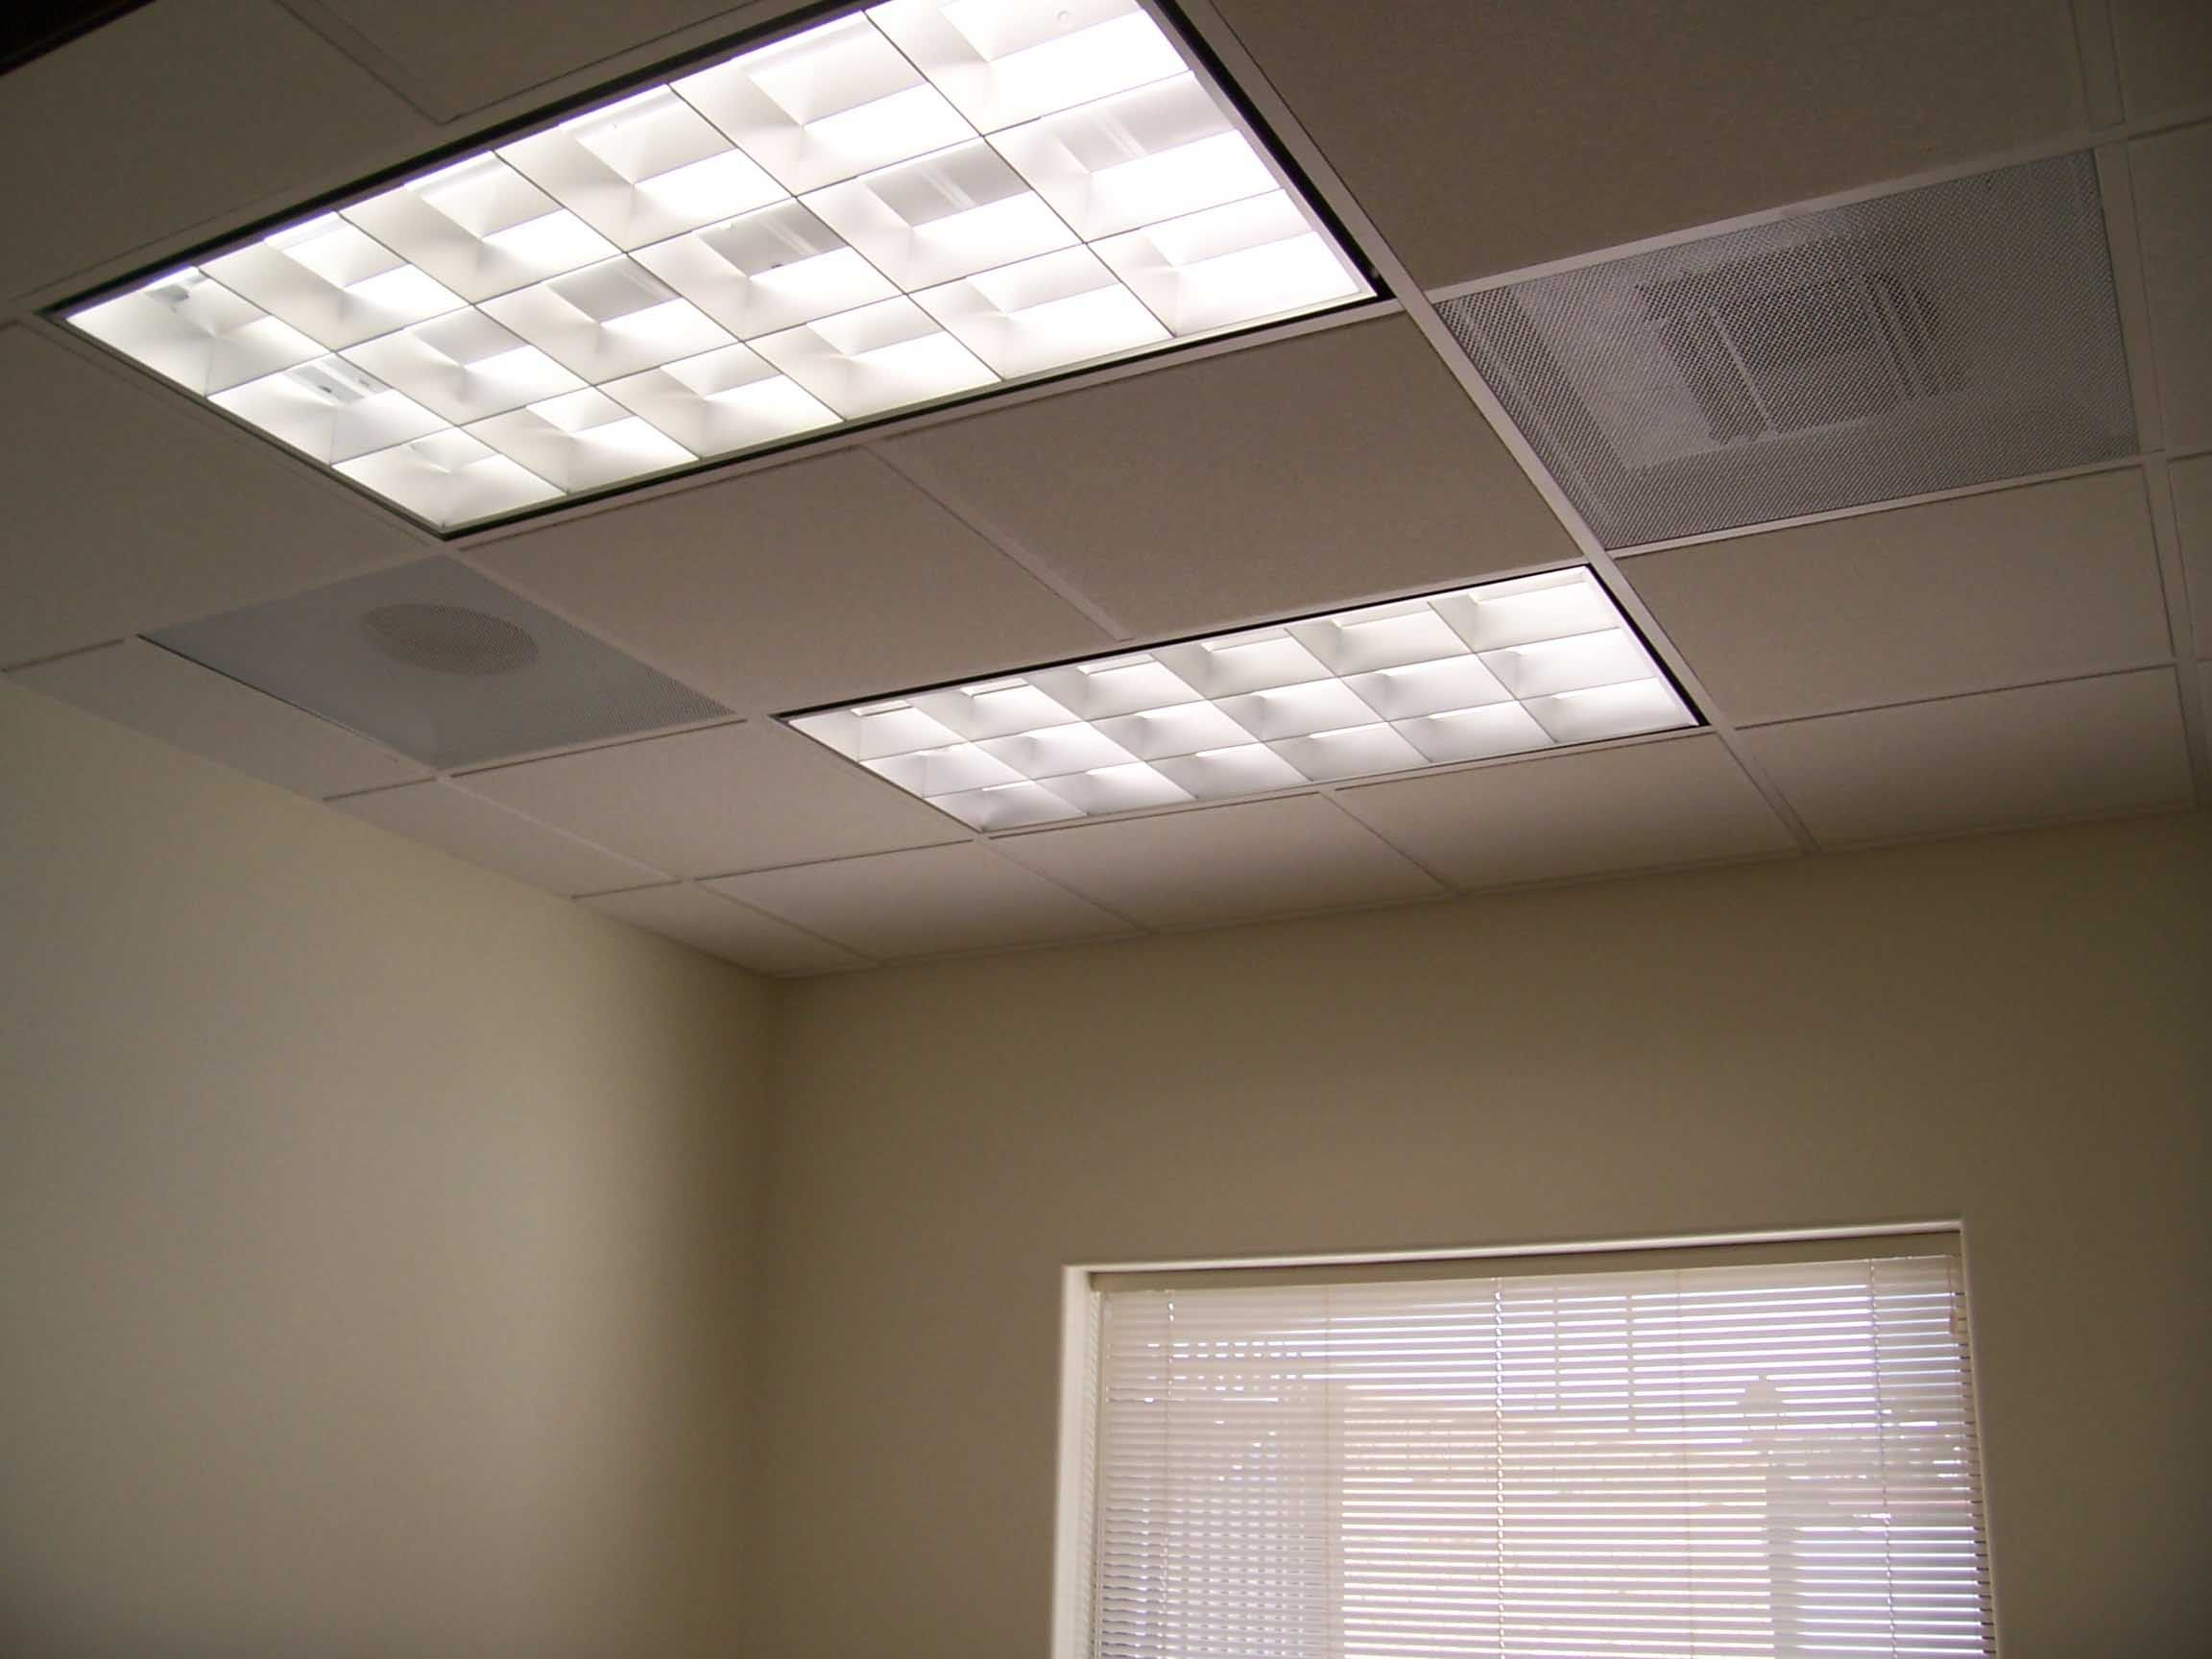 Fluorescent Ceiling Tile Lights Led Lighting Fixutre